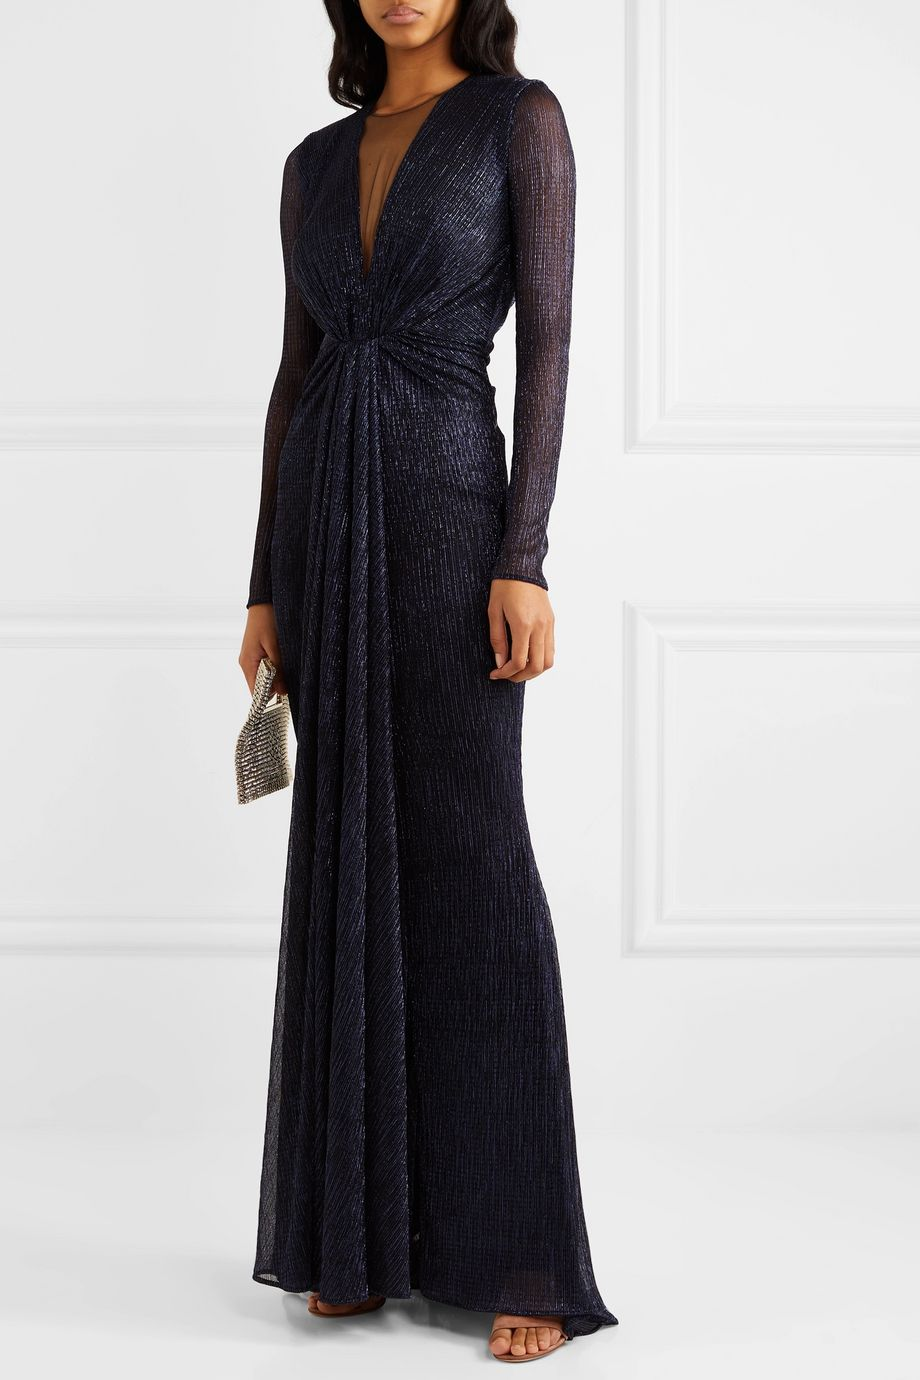 Talbot Runhof Knotted tulle-trimmed metallic voile gown